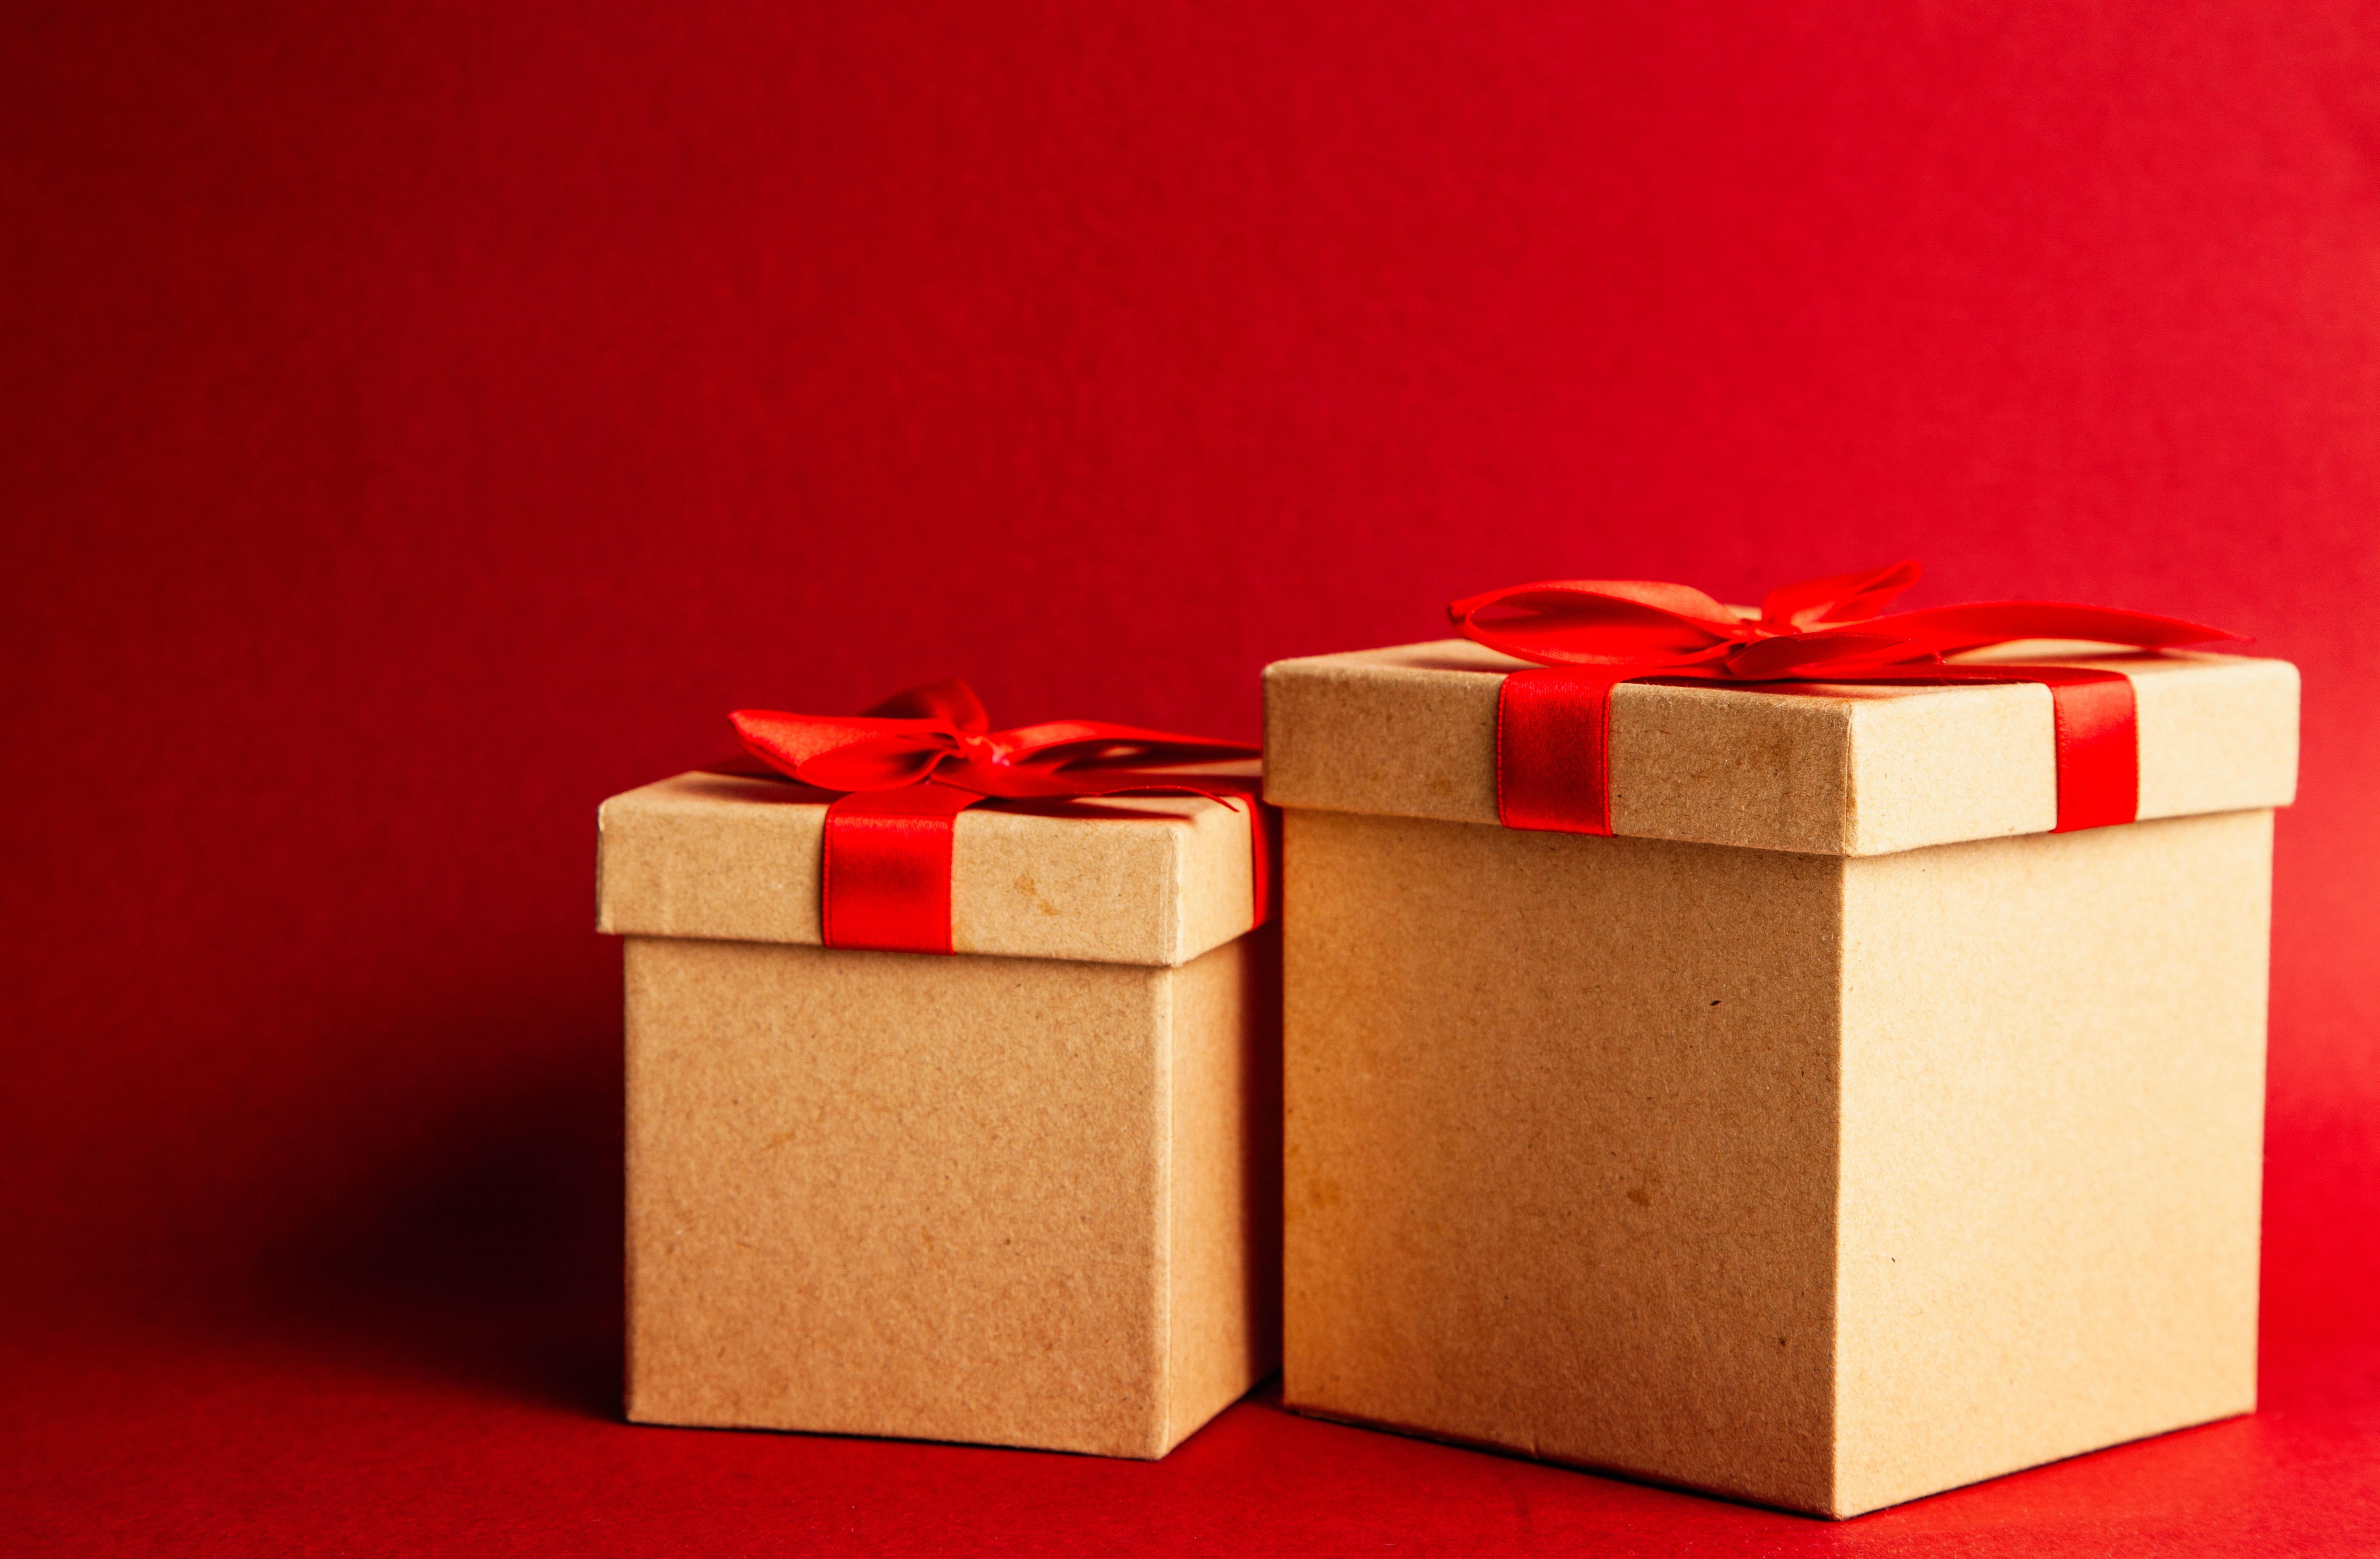 Two Brown-and-red Gift Boxes on Red Surface & 250+ Engaging Gift Box Photos · Pexels · Free Stock Photos